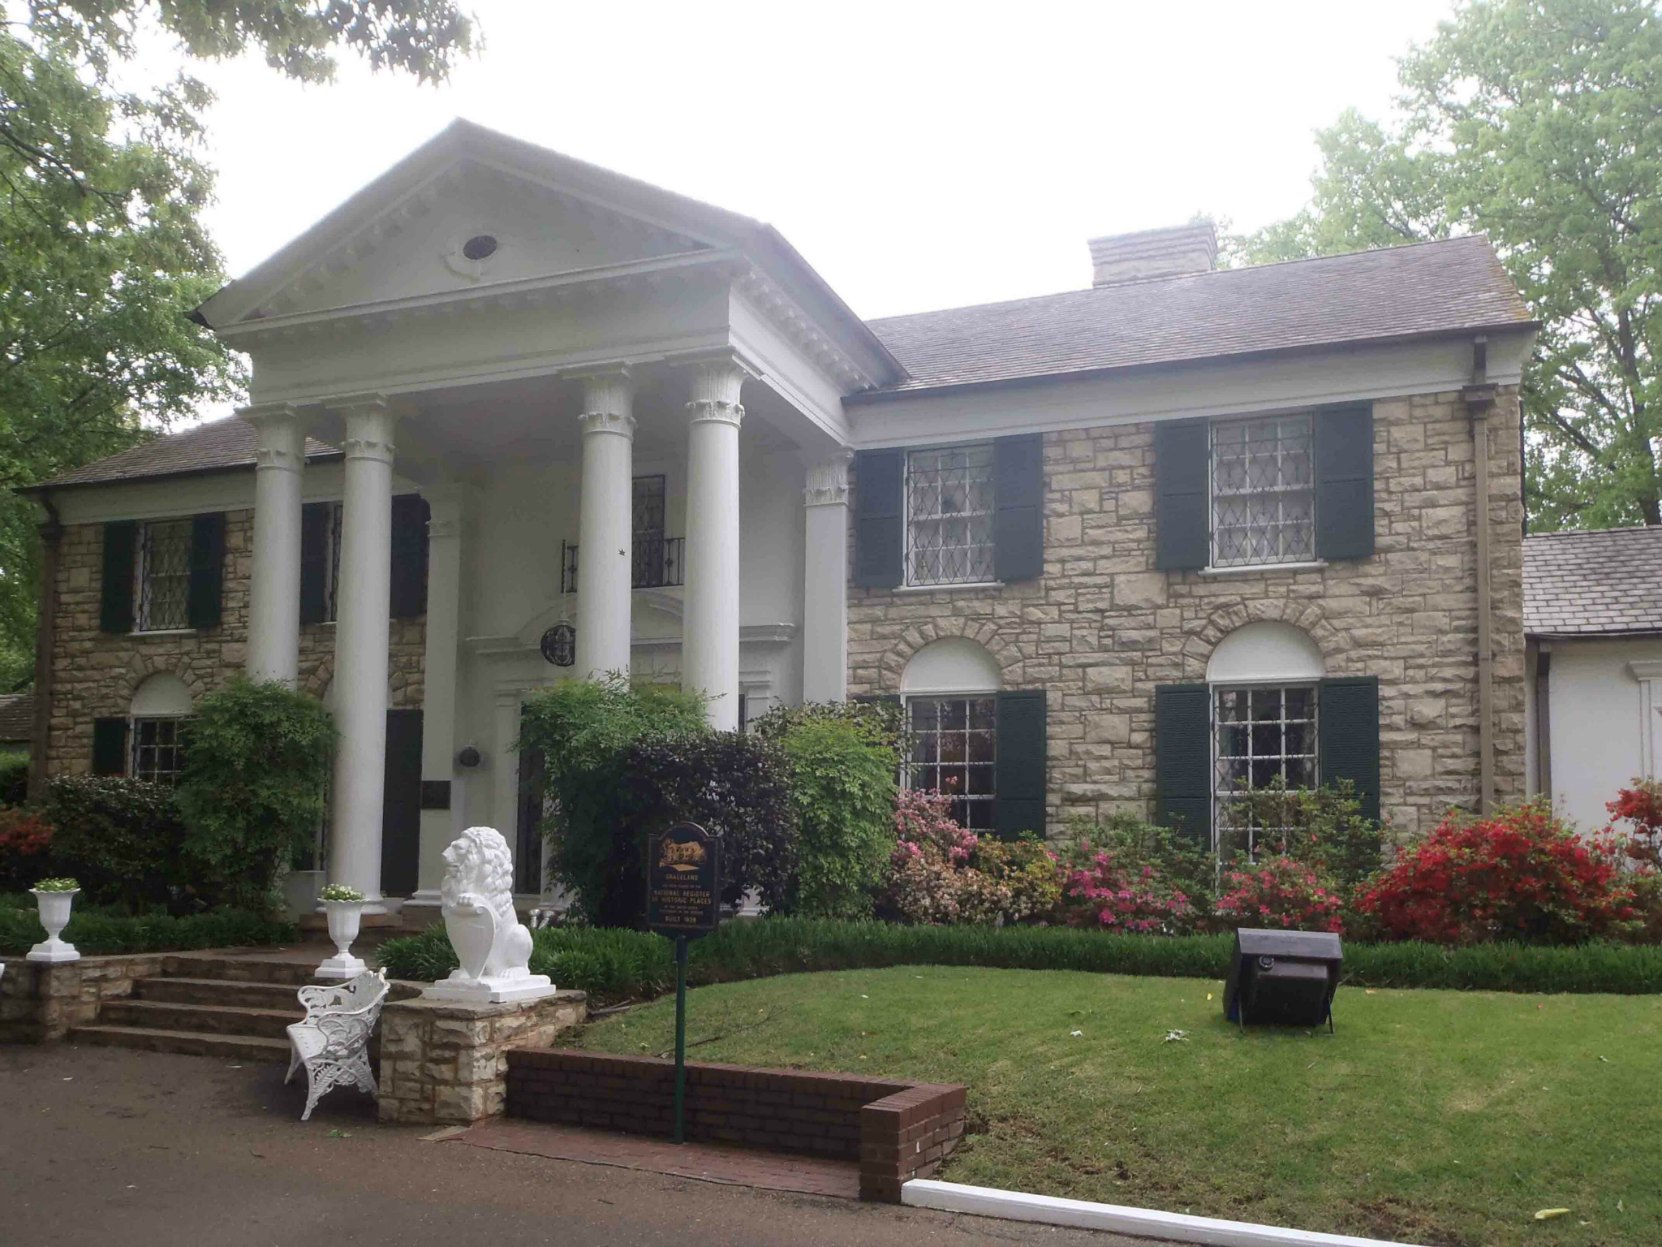 The front entrance of Graceland, Memphis, Tennessee